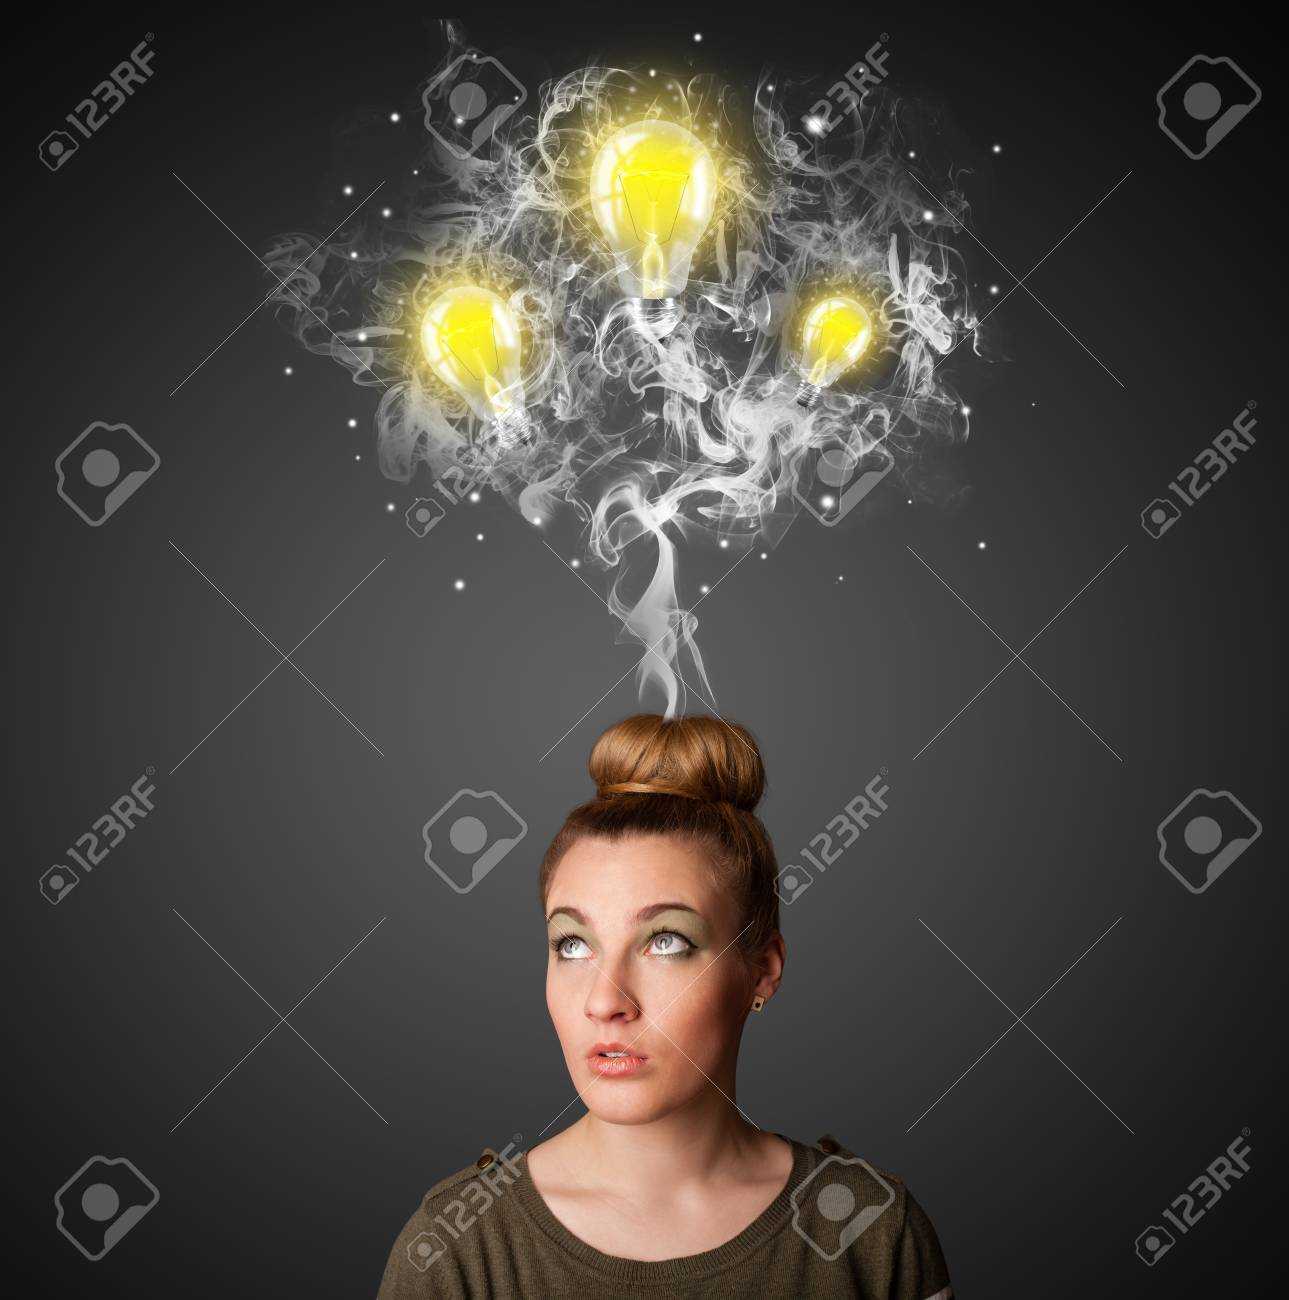 Pretty young woman with smoke and lightbulbs above her head Stock Photo - 23340742